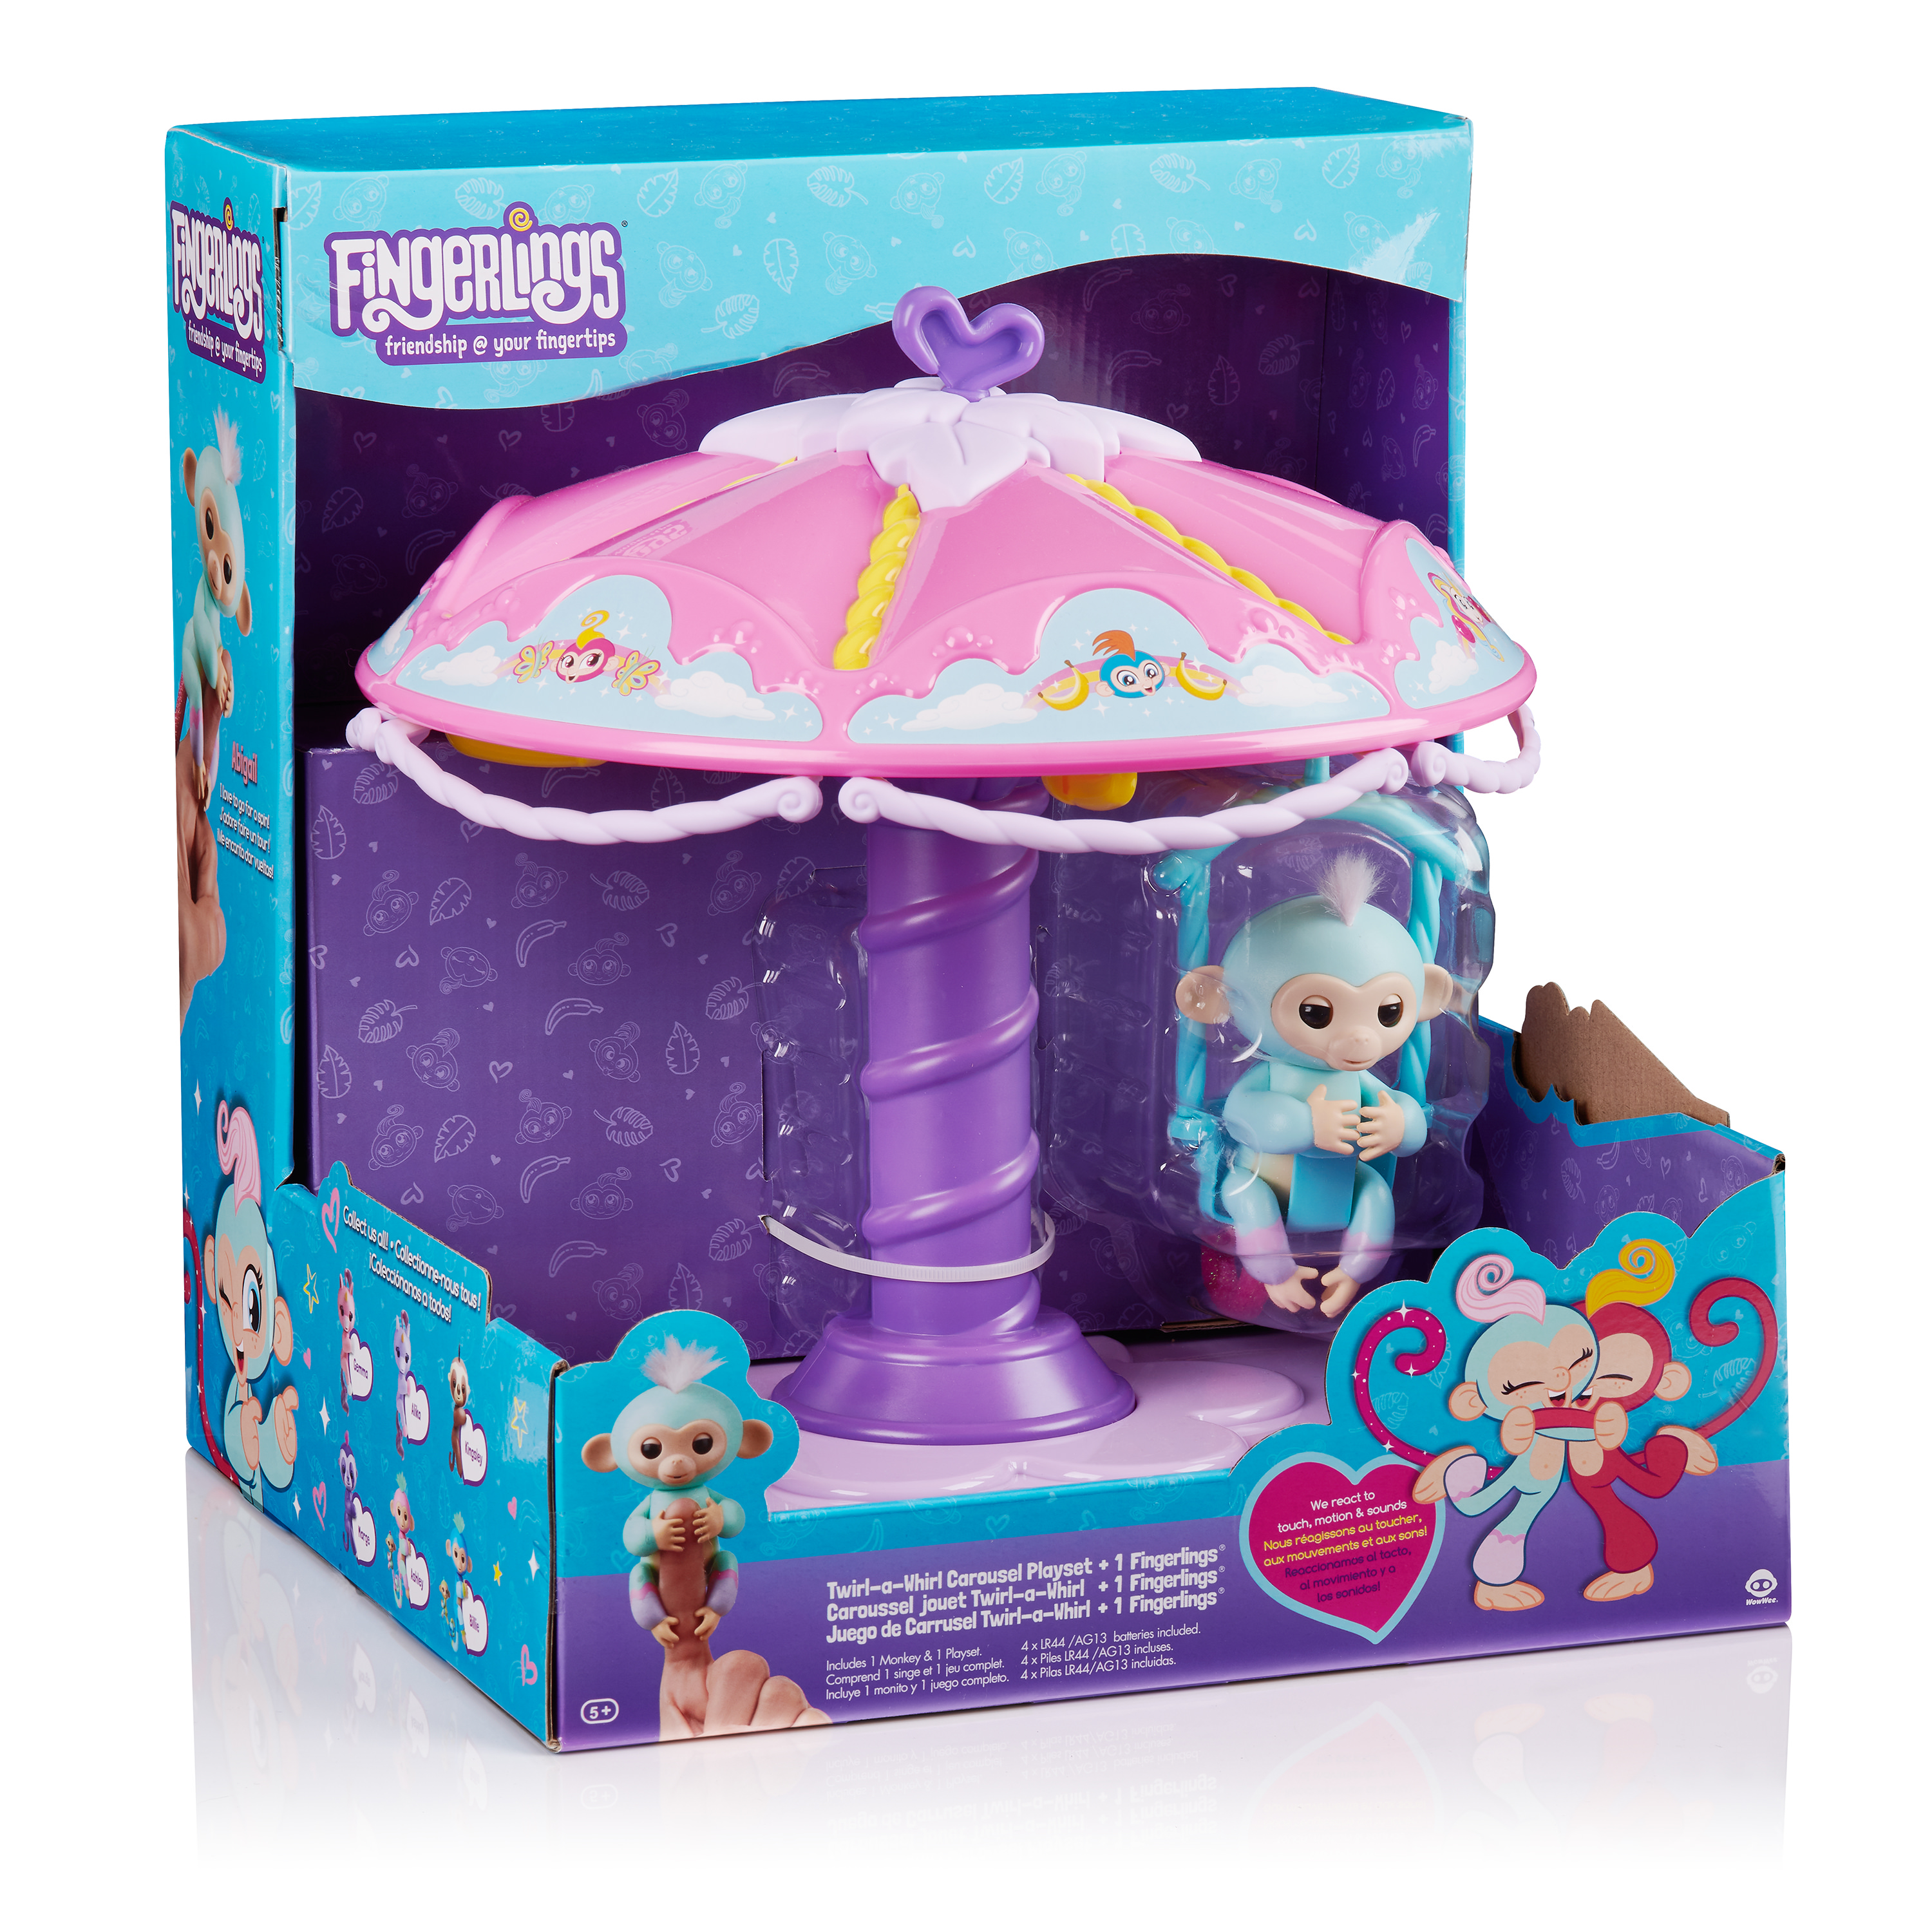 Fingerlings Playset: Twirl-a-Whirl Carousel with 1 Fingerlings Baby Monkey  -